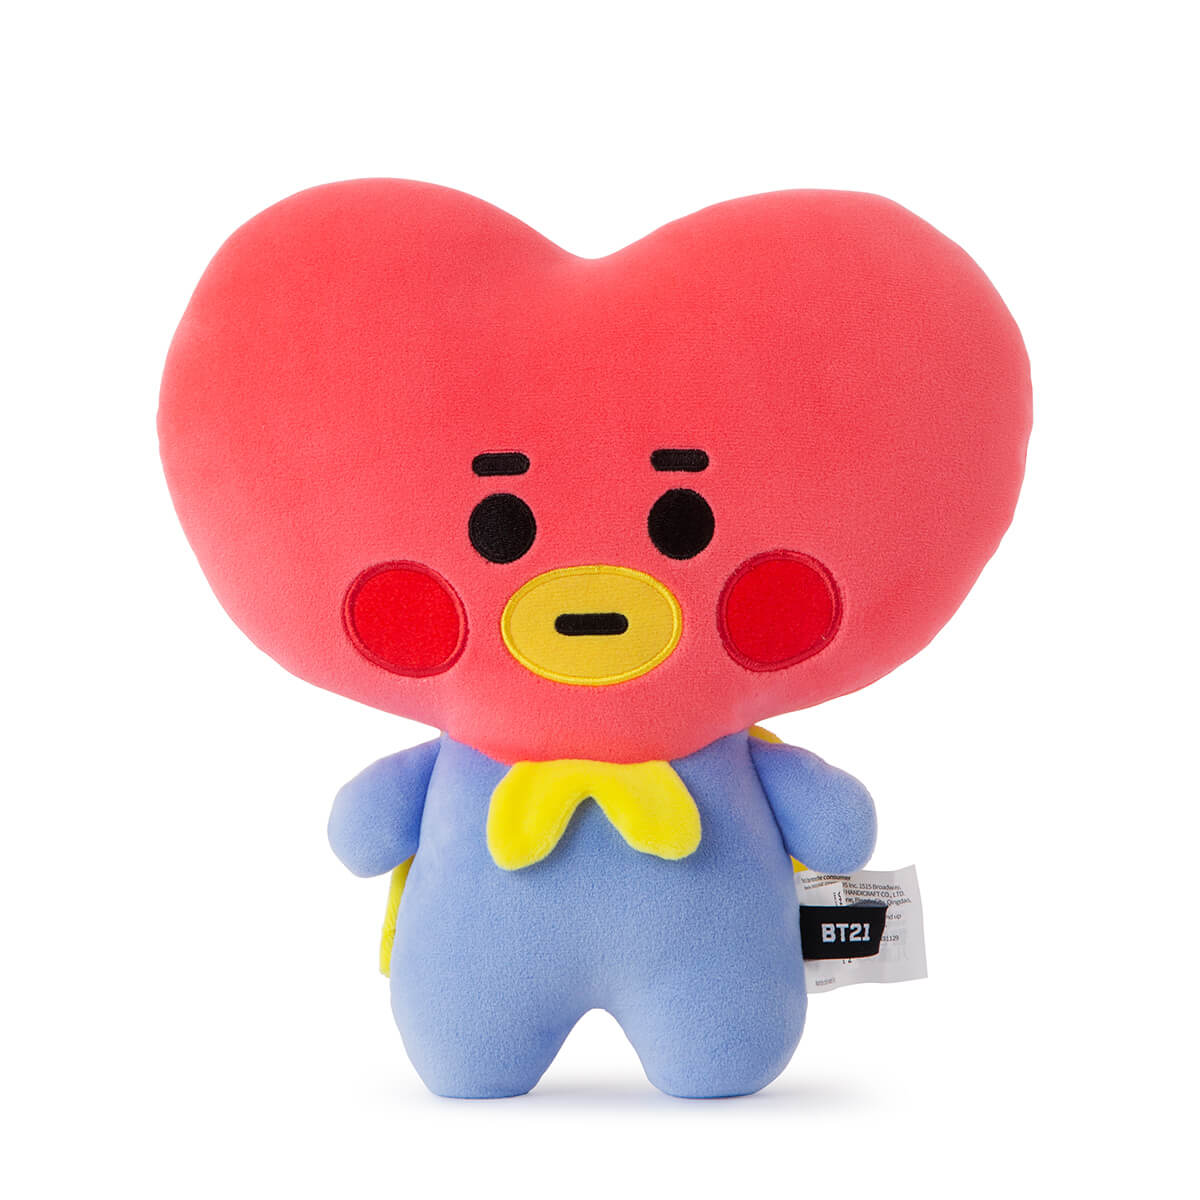 BT21 TATA Baby Mini Body Cushion